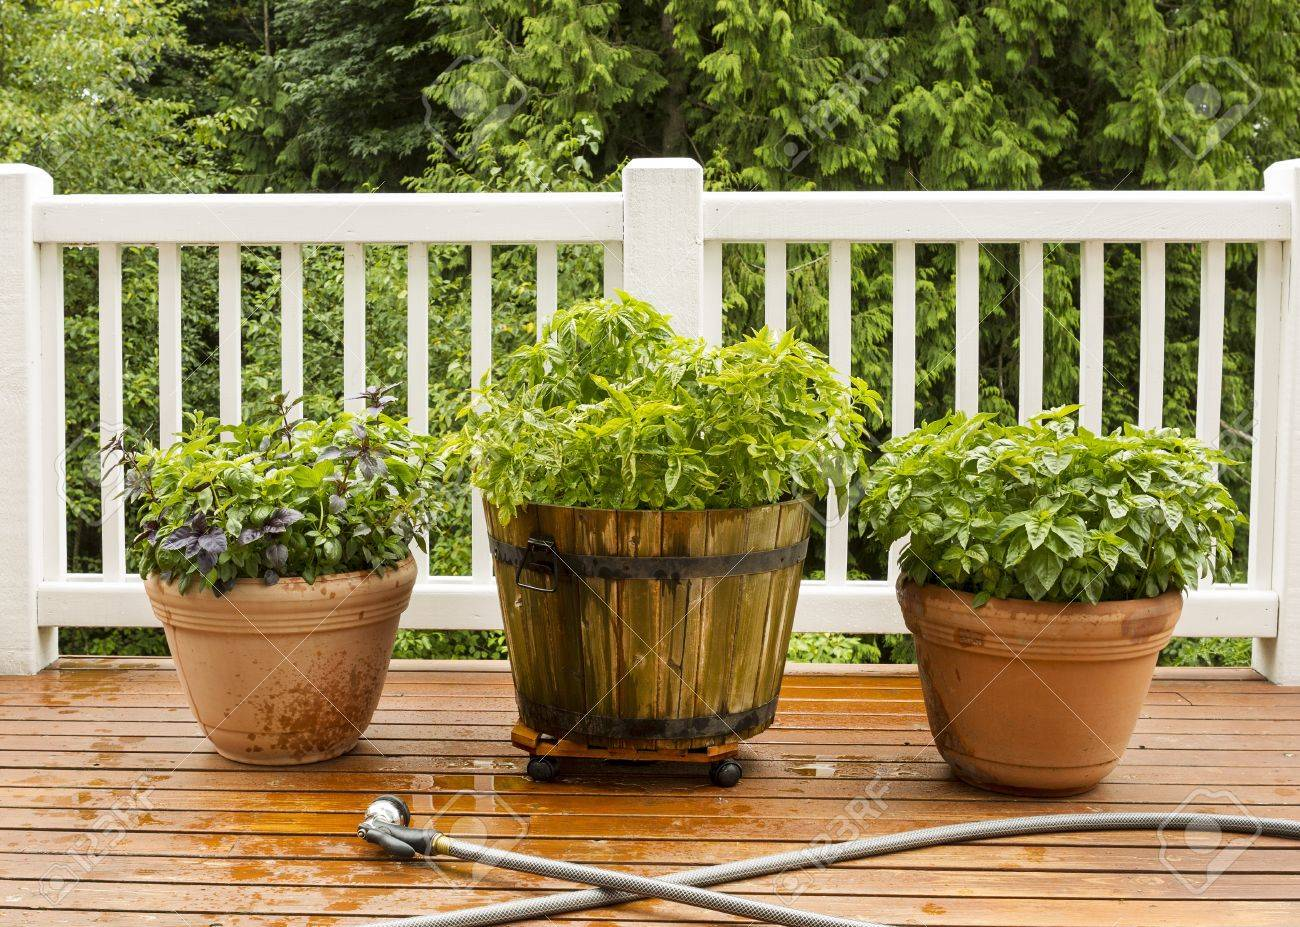 Horizontal Photo Of A Home Herb Garden, With Watering Hose In Front Of Pots  On